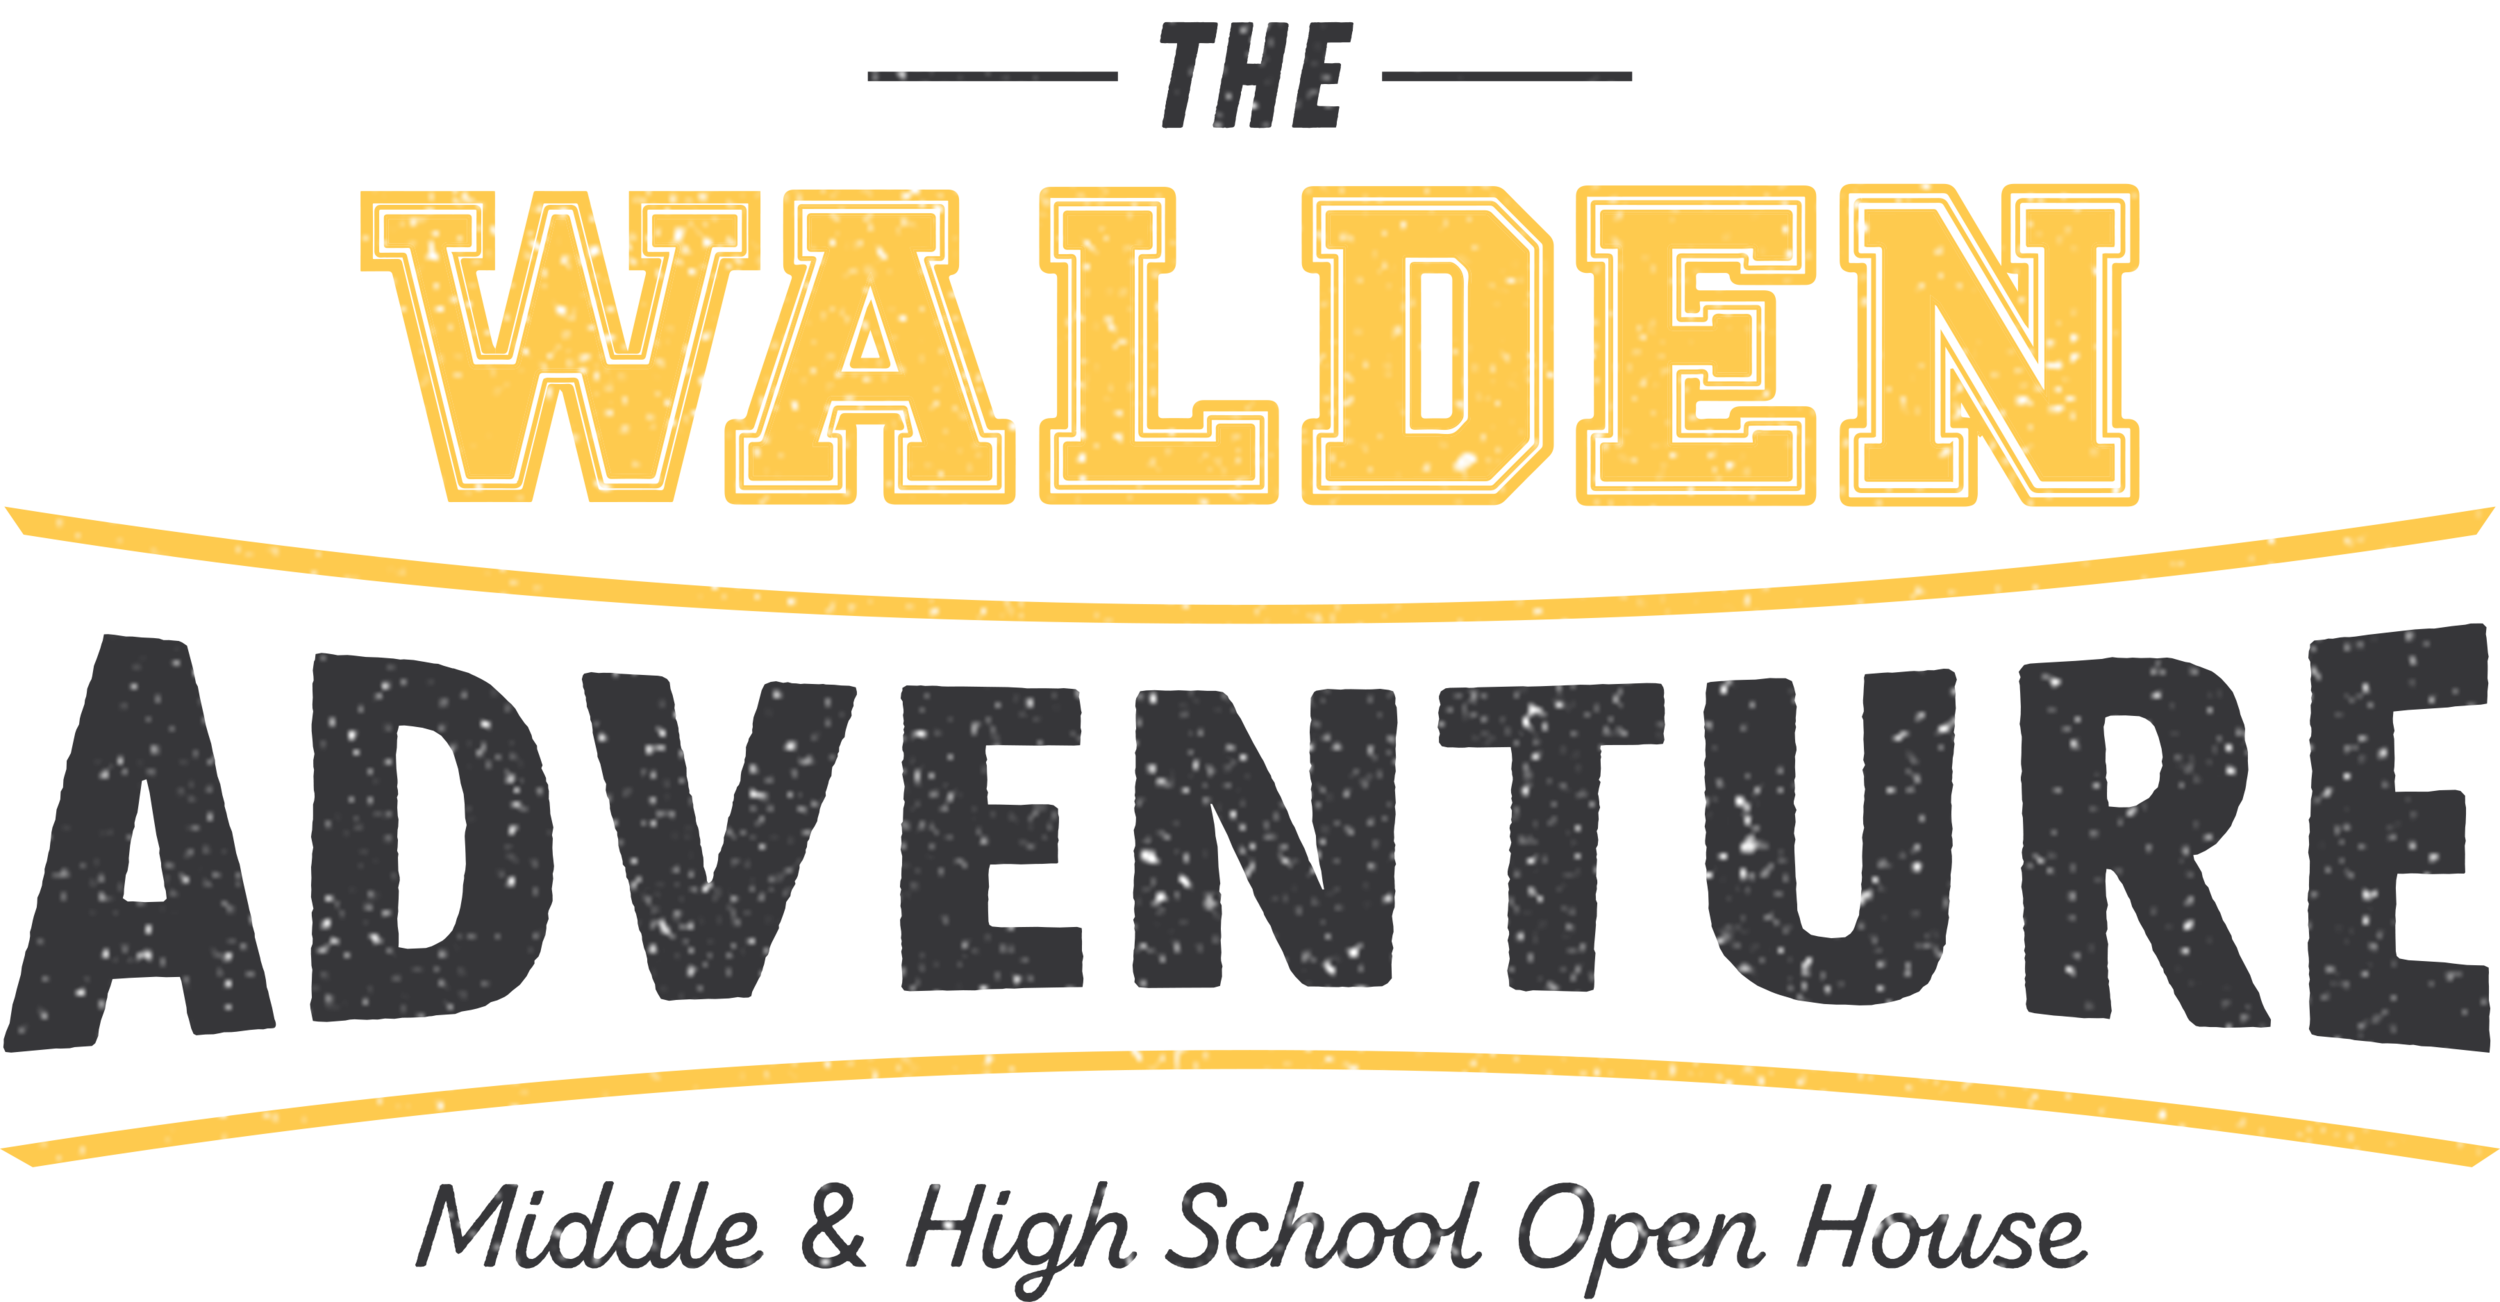 Adventure is calling - • Take a student-let journey through Walden Middle and High Schools, from the 5th Grade art room to the 12th Grade robotics lab• Experience the exciting academic opportunities and school culture in an active group environment• Meet and mingle with faculty and students in fun, hands-on classroom activities• Enjoy FREE drinks, refreshments, and Walden merch• Bring your best dance moves; DJ DS will be dropping beats in the gym